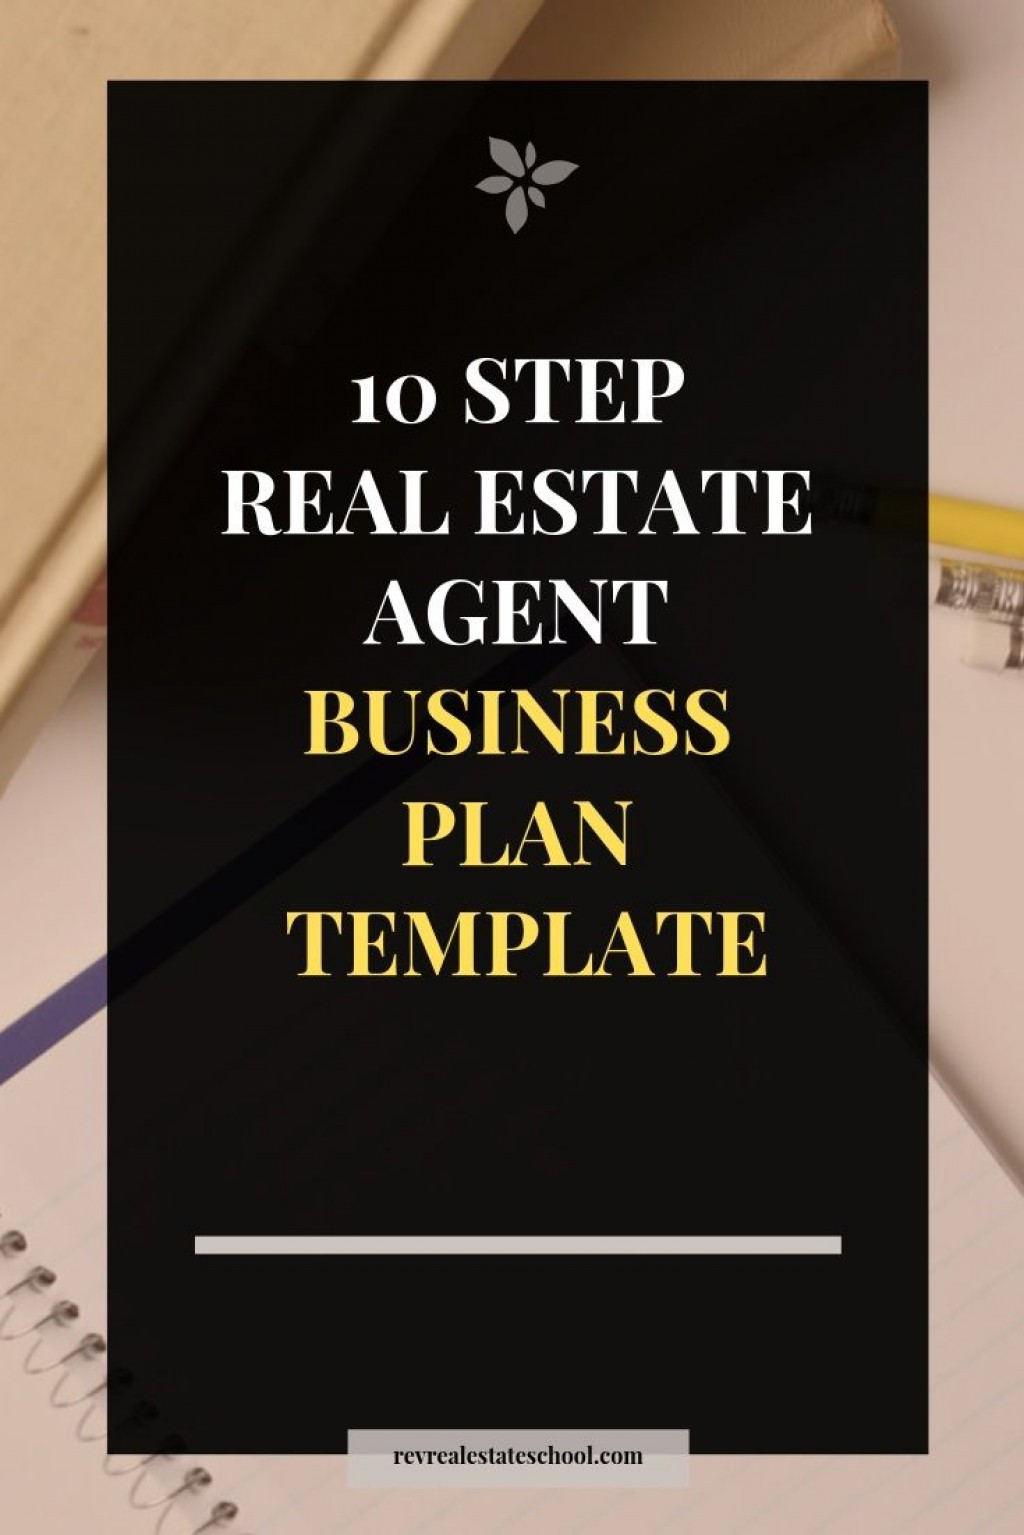 008 Beautiful Real Estate Busines Plan Template High Def  Free Download Investing Pdf Company ExampleLarge